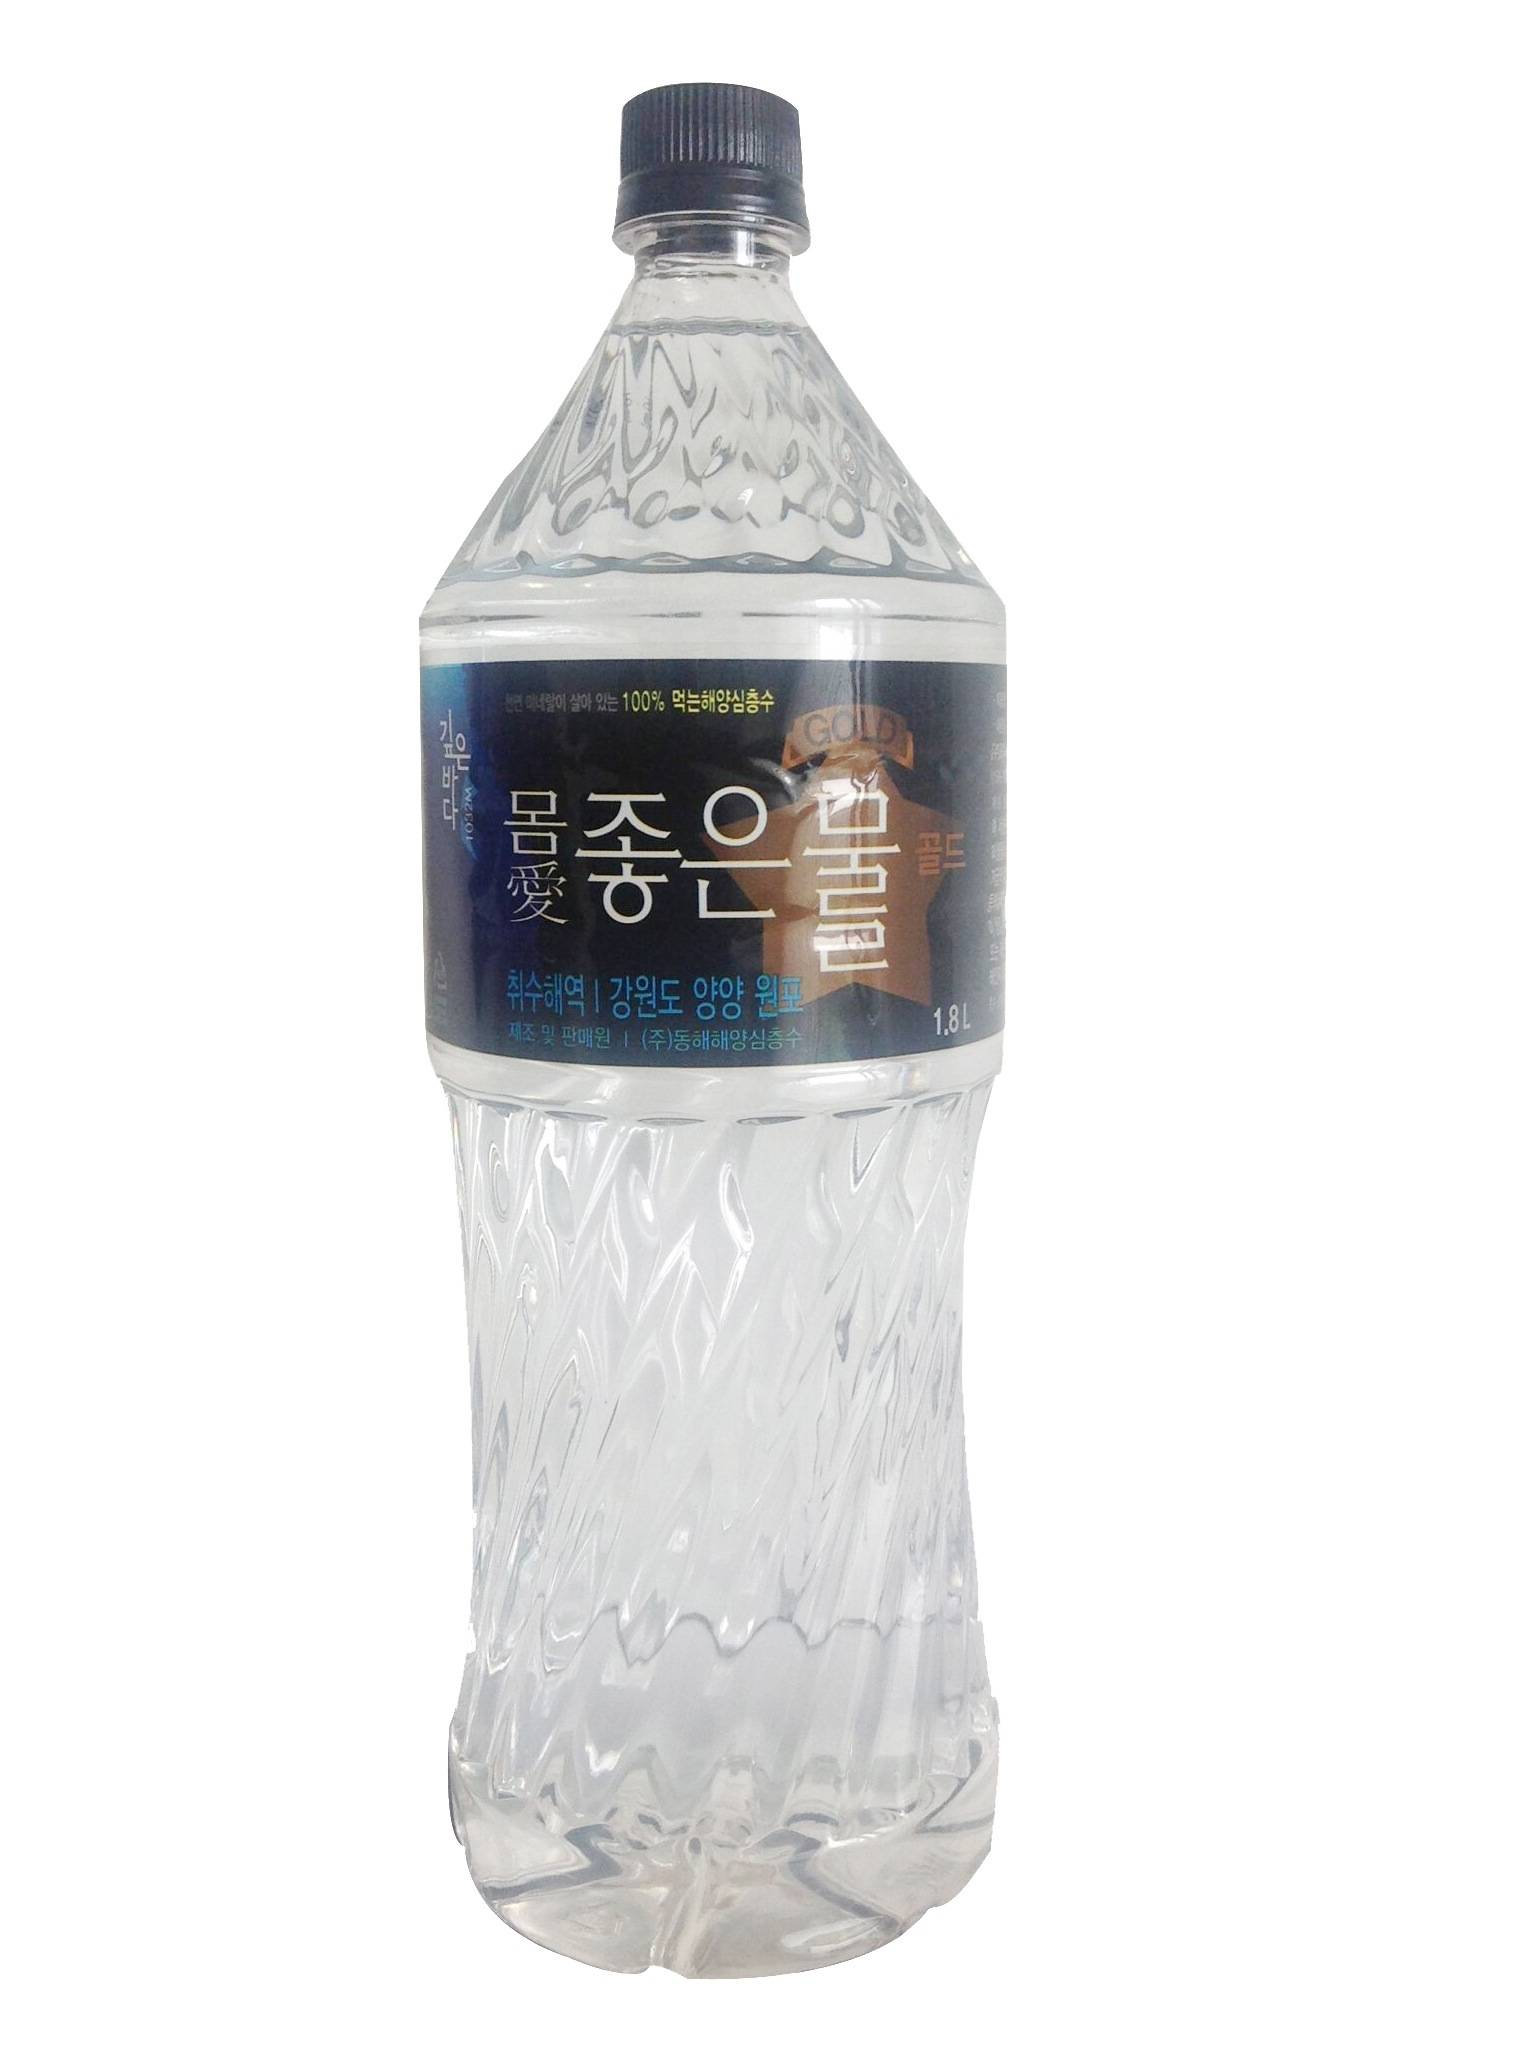 China Importer/Distributor wanted for our Deep Sea Mineral Water